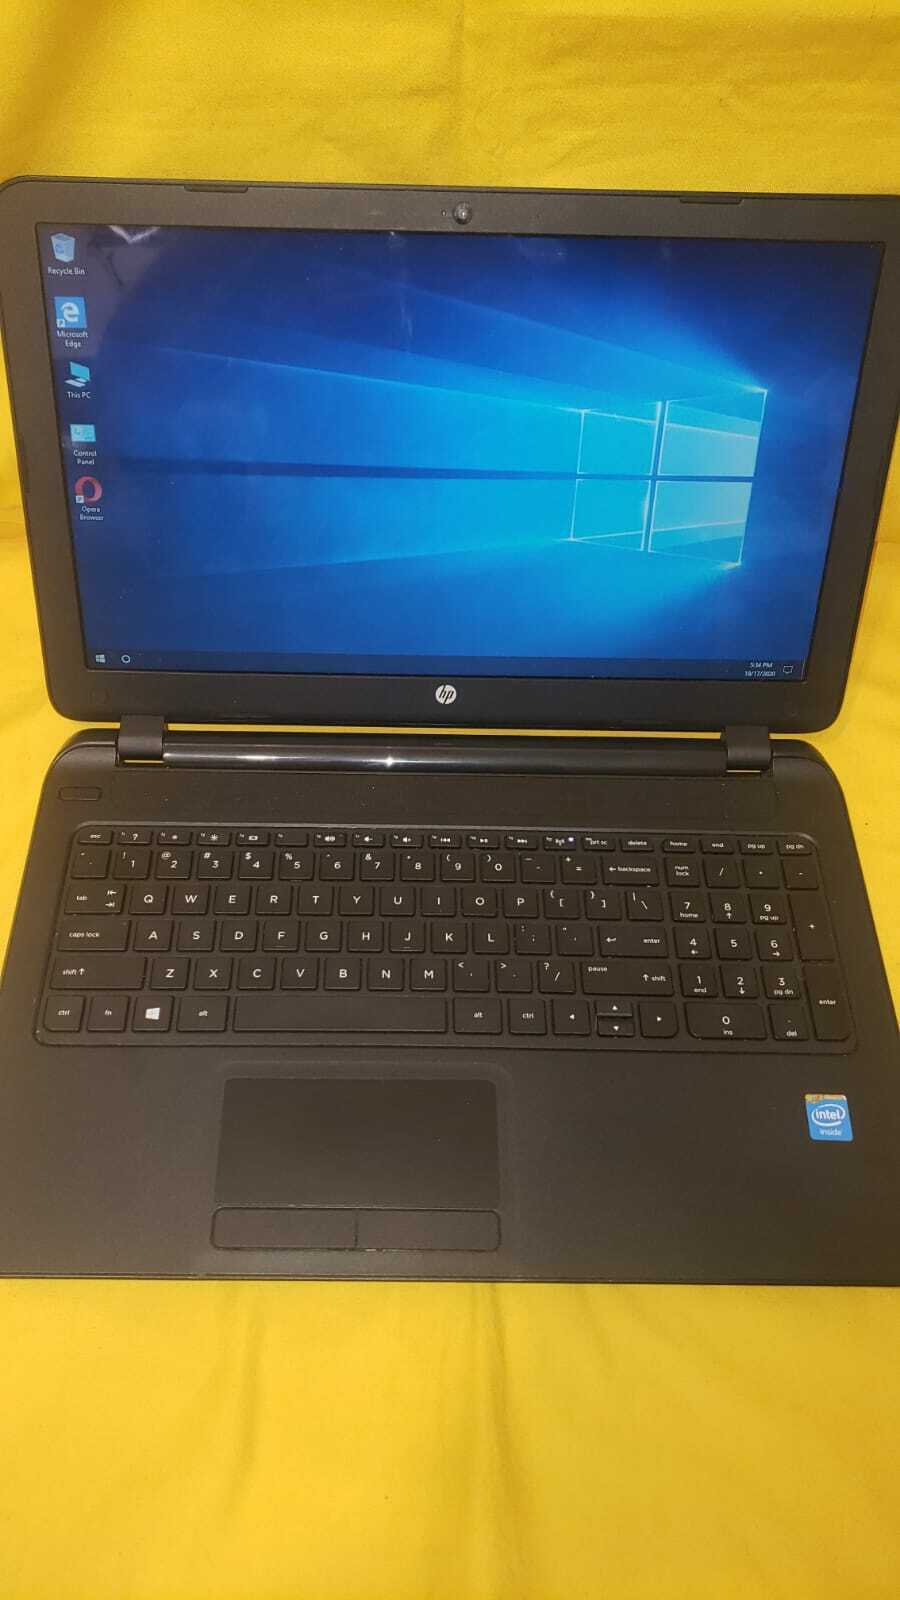 Laptop Windows - hp touchscreen 15-f211wm 15.6-inch celeron n2830 4gb/500gb windows 10